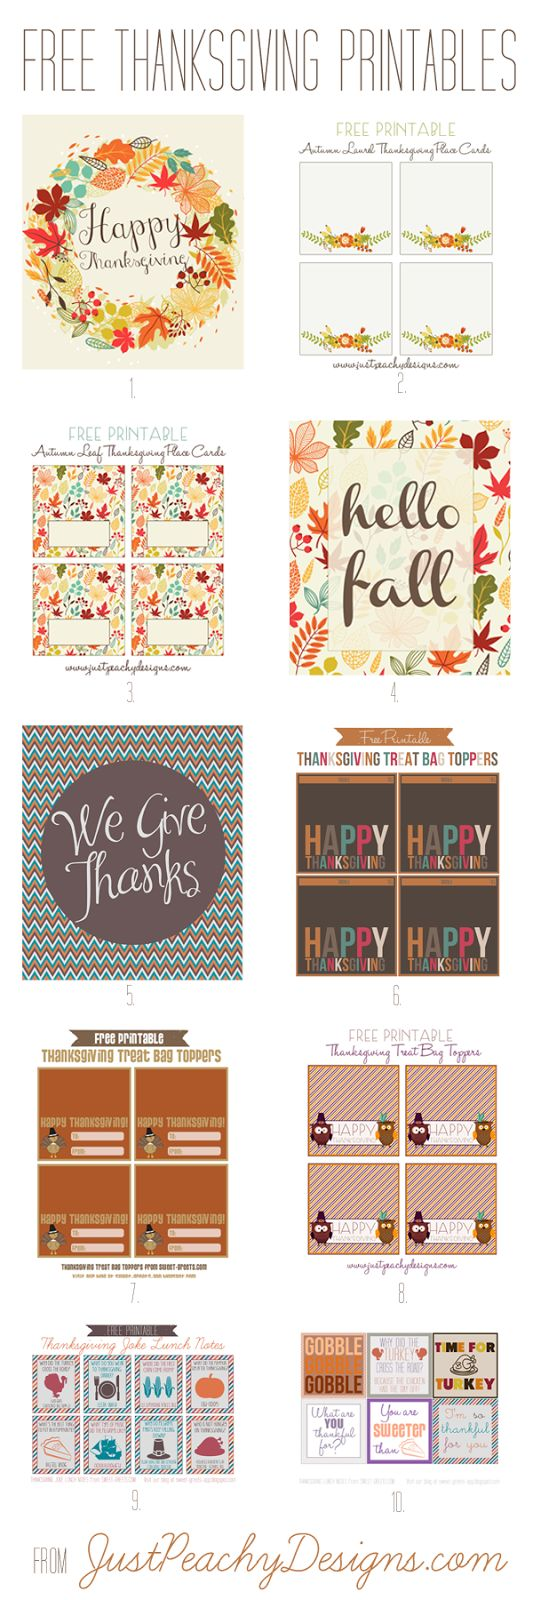 1058 best thanksgiving printables 2 images on pinterest